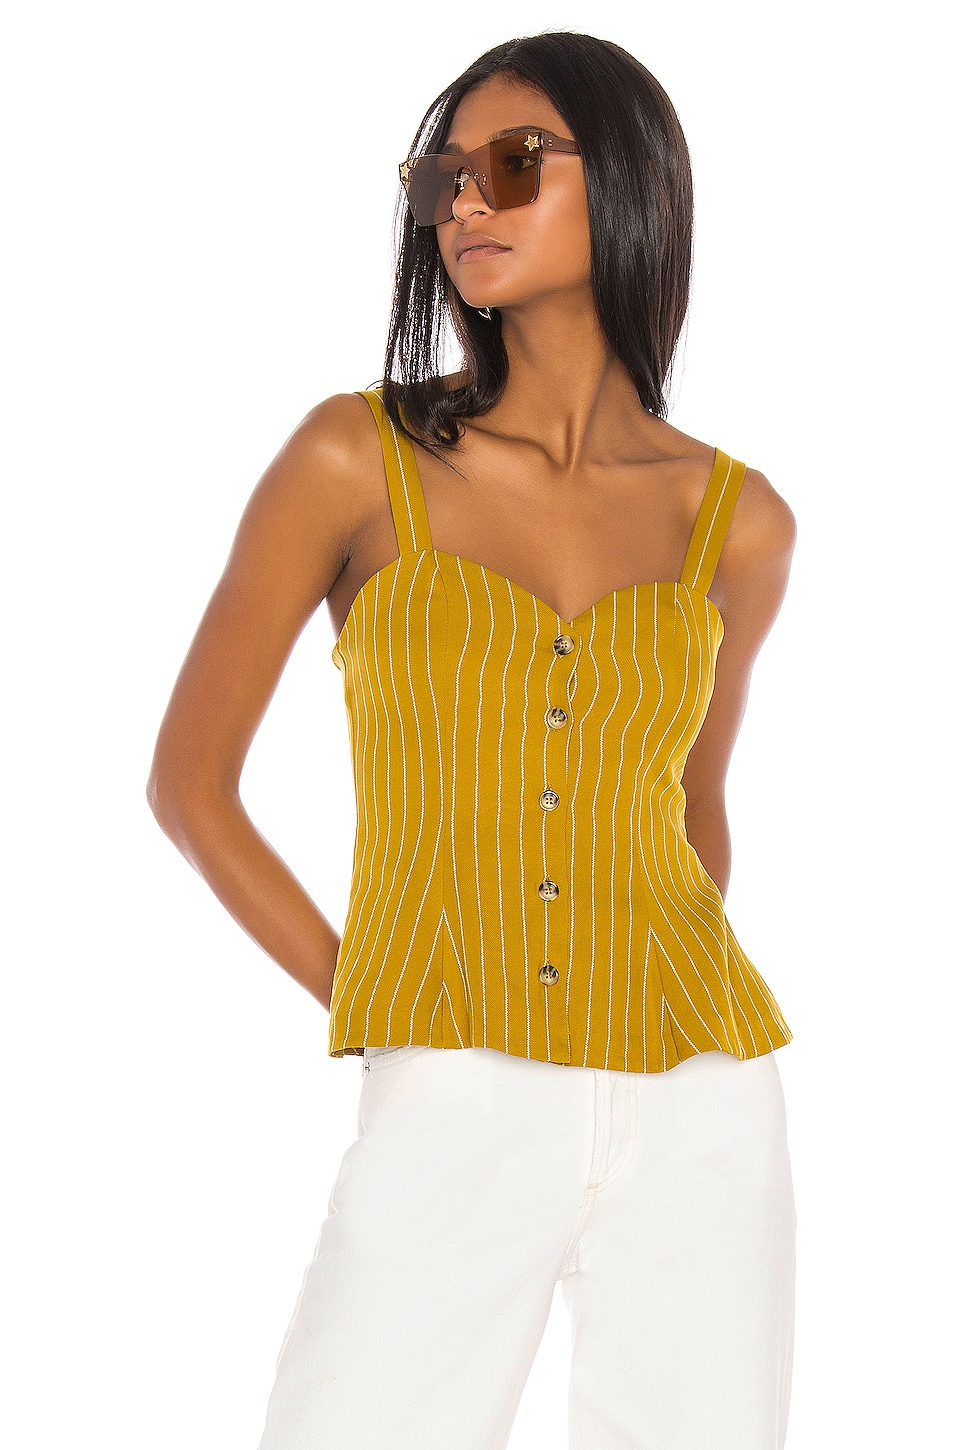 L'Academie The Brasilia Top in Mustard & White